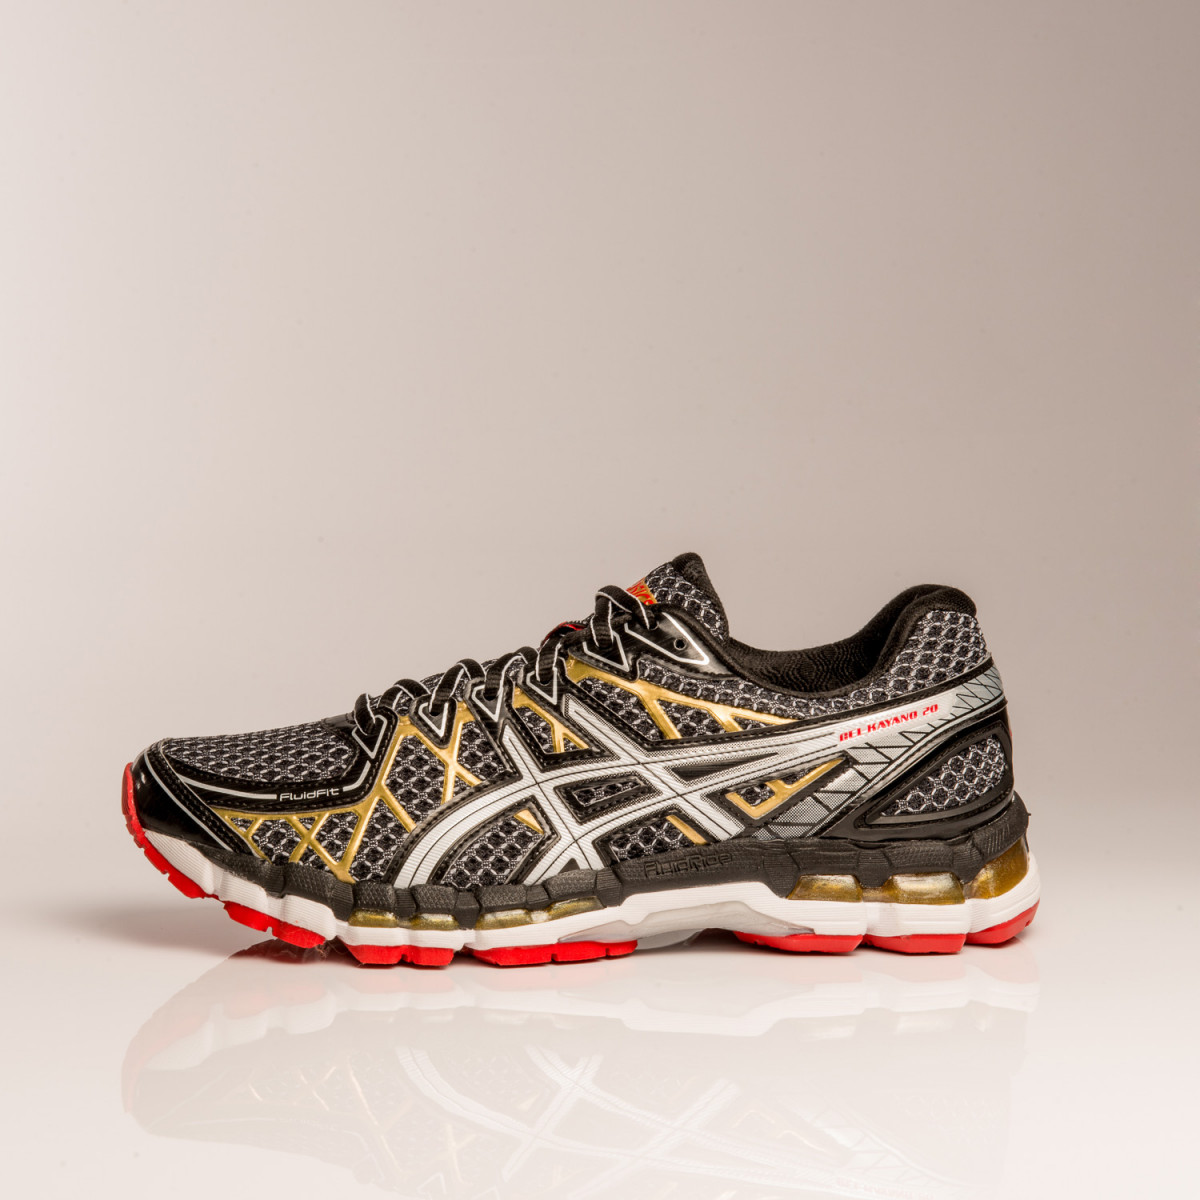 ZAPATILLAS ASICS GEL KAYANO 20